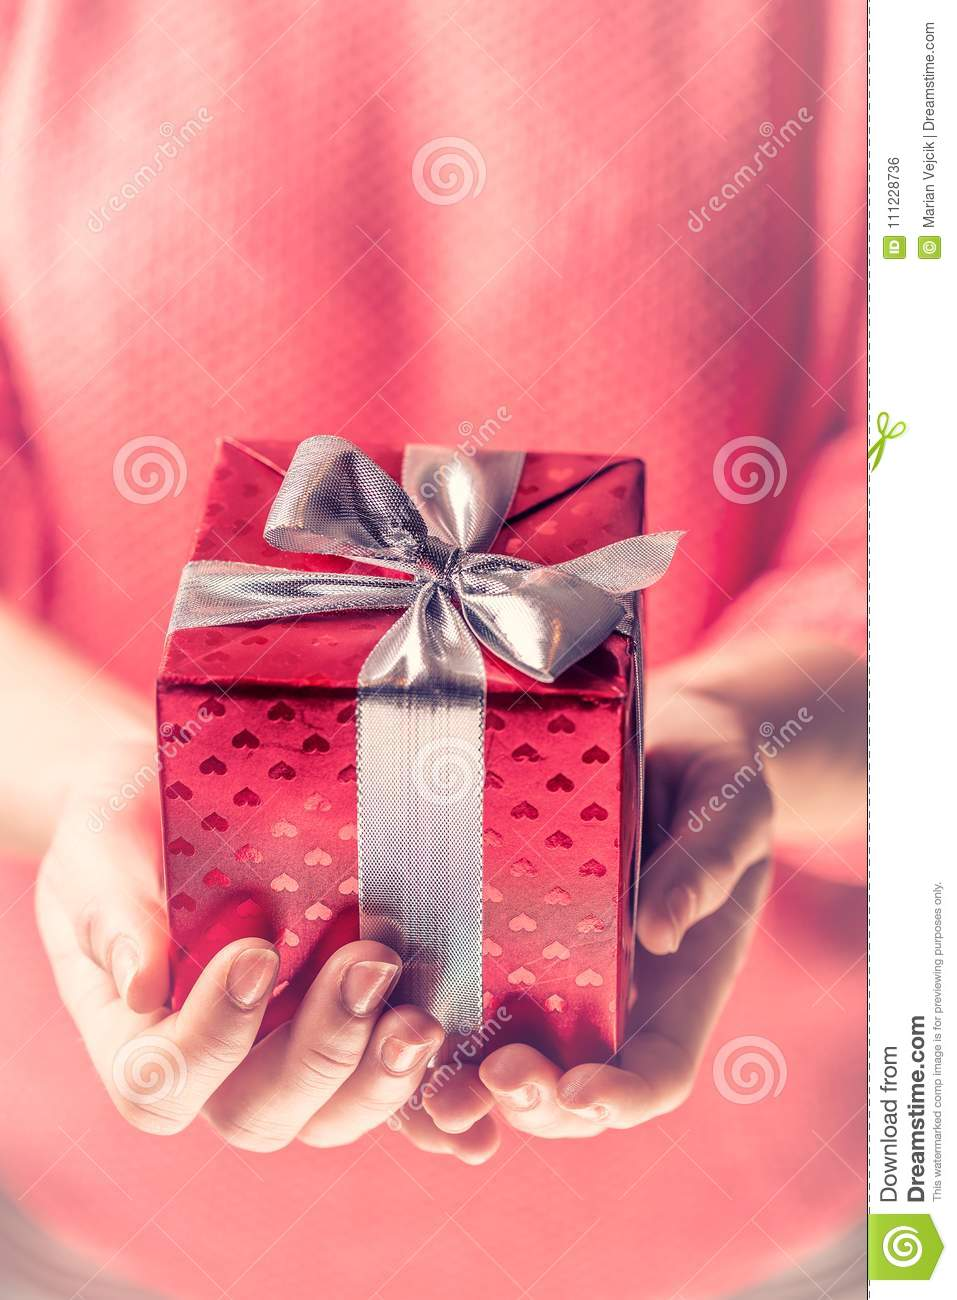 Female Hands Holding A Red Gift Wrapped With Silver Ribbon. Stock ...